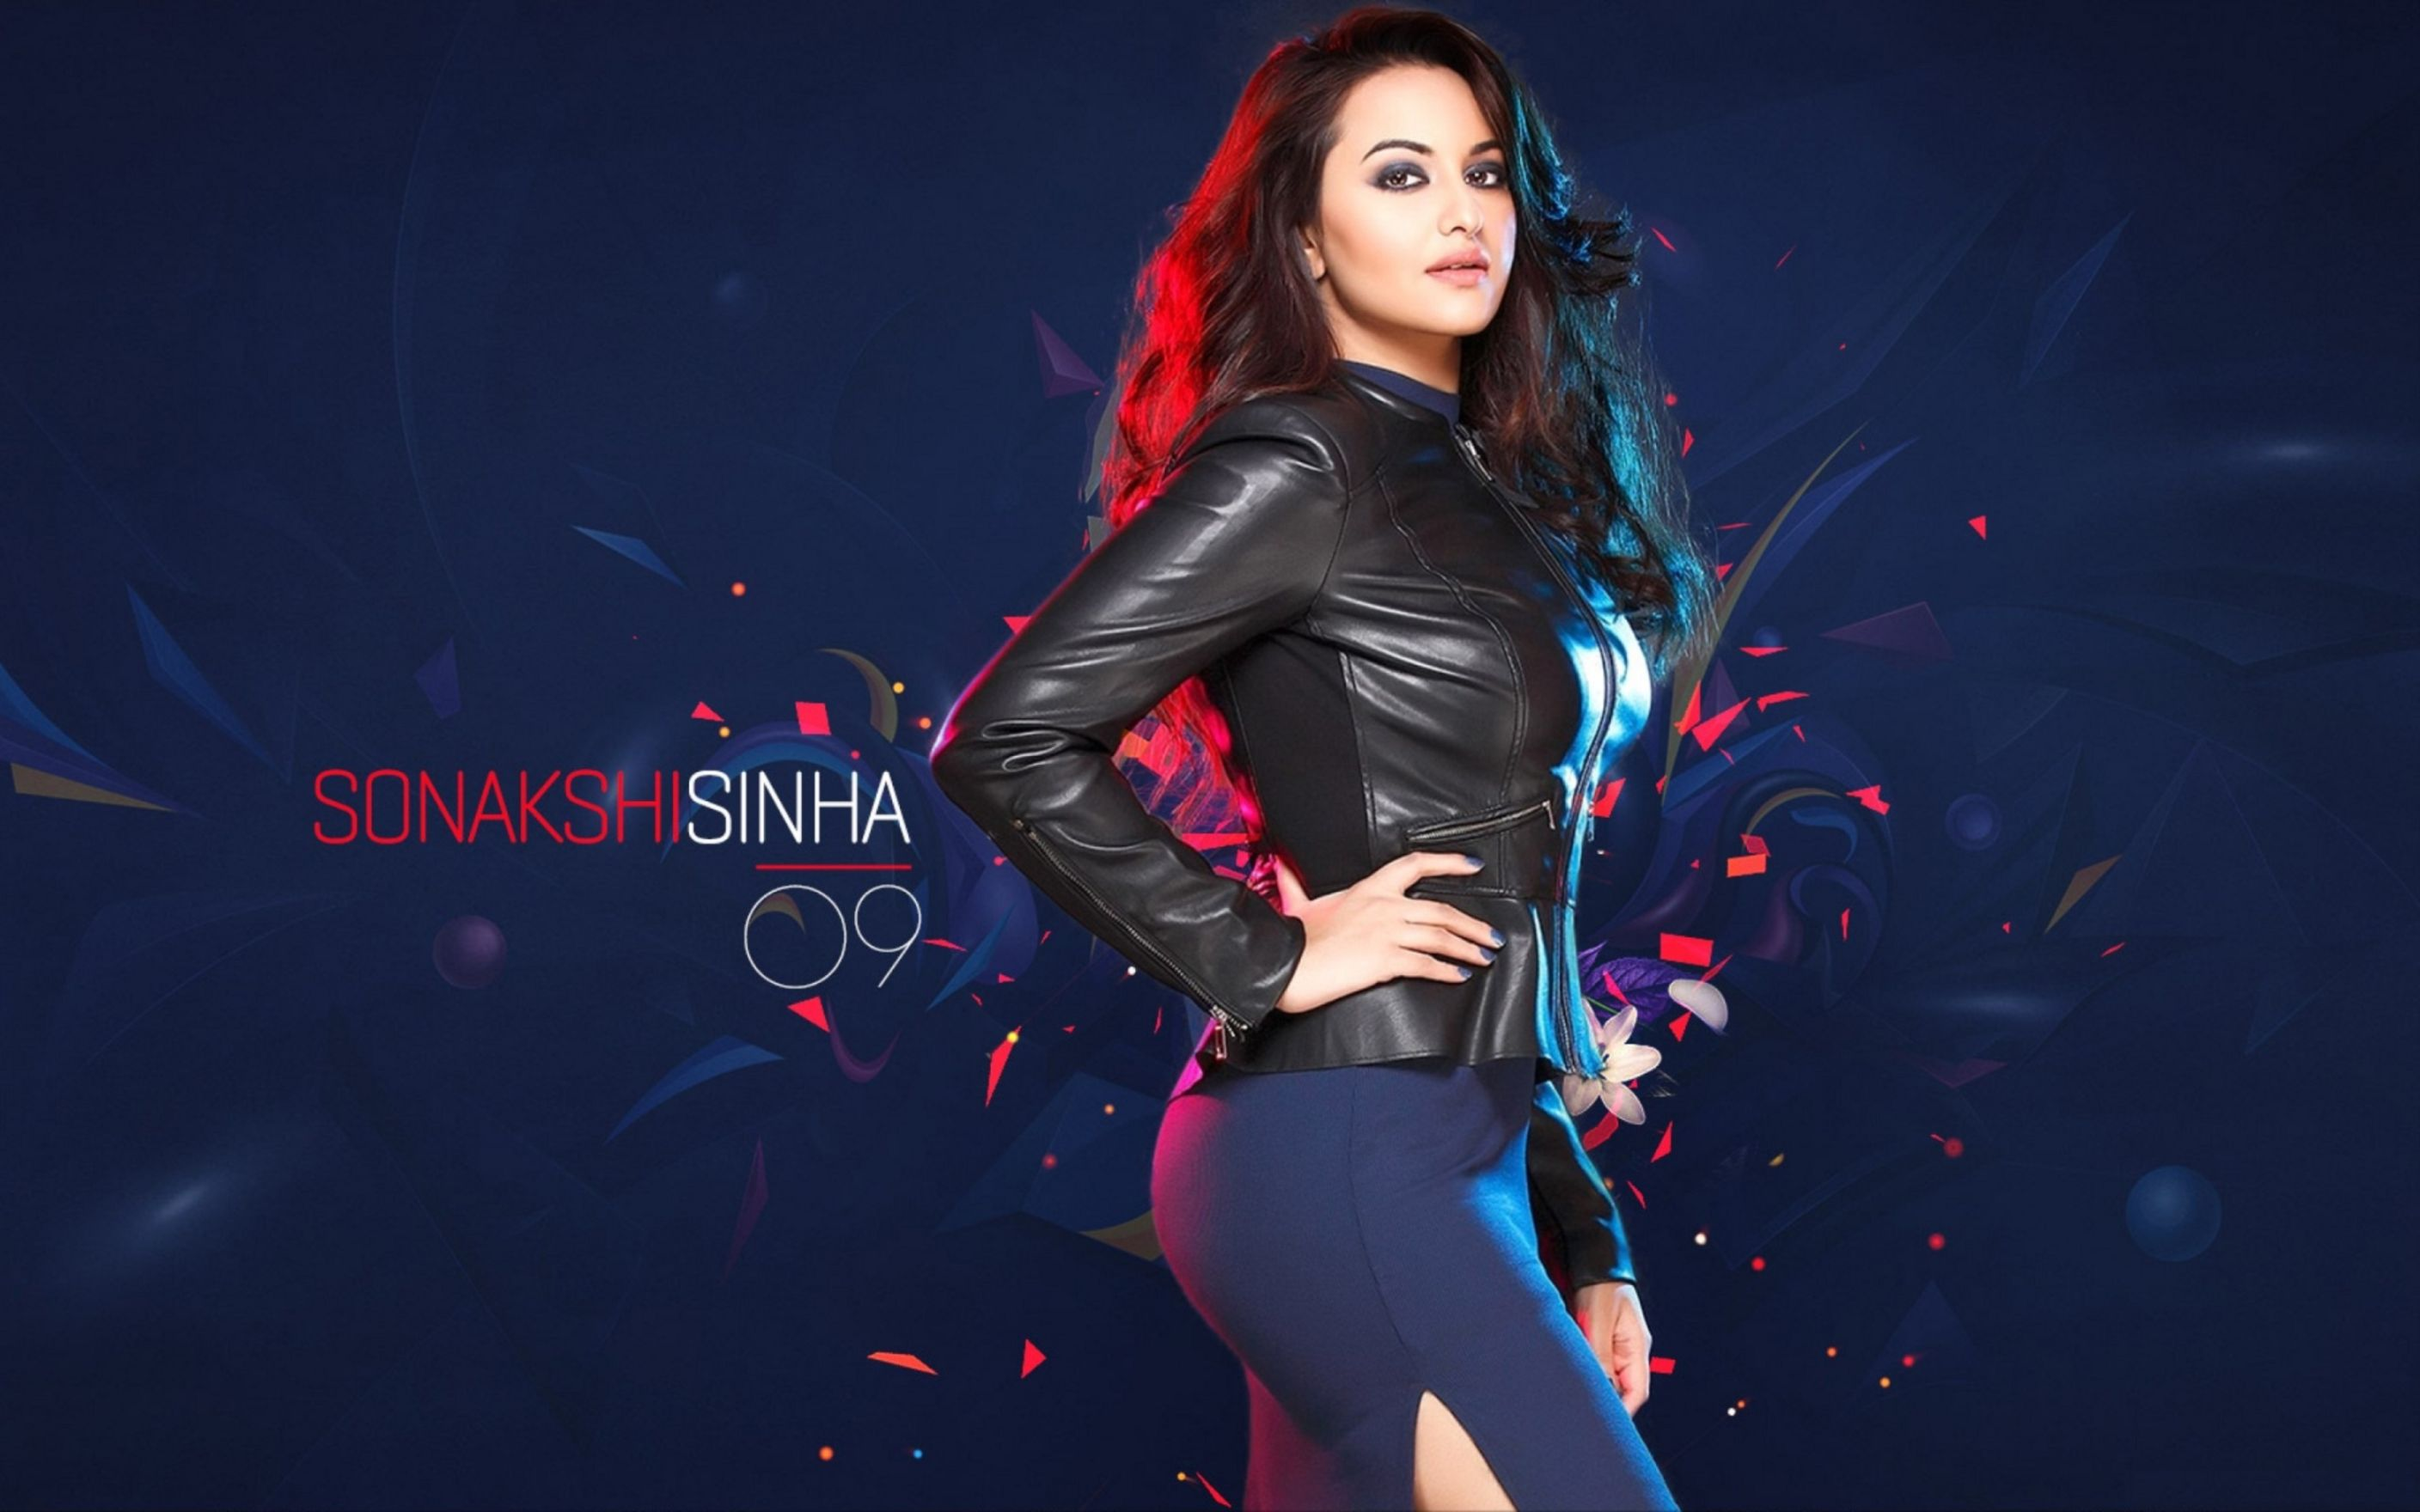 Download free HD Sonakshi Sinha Wallpaper, image